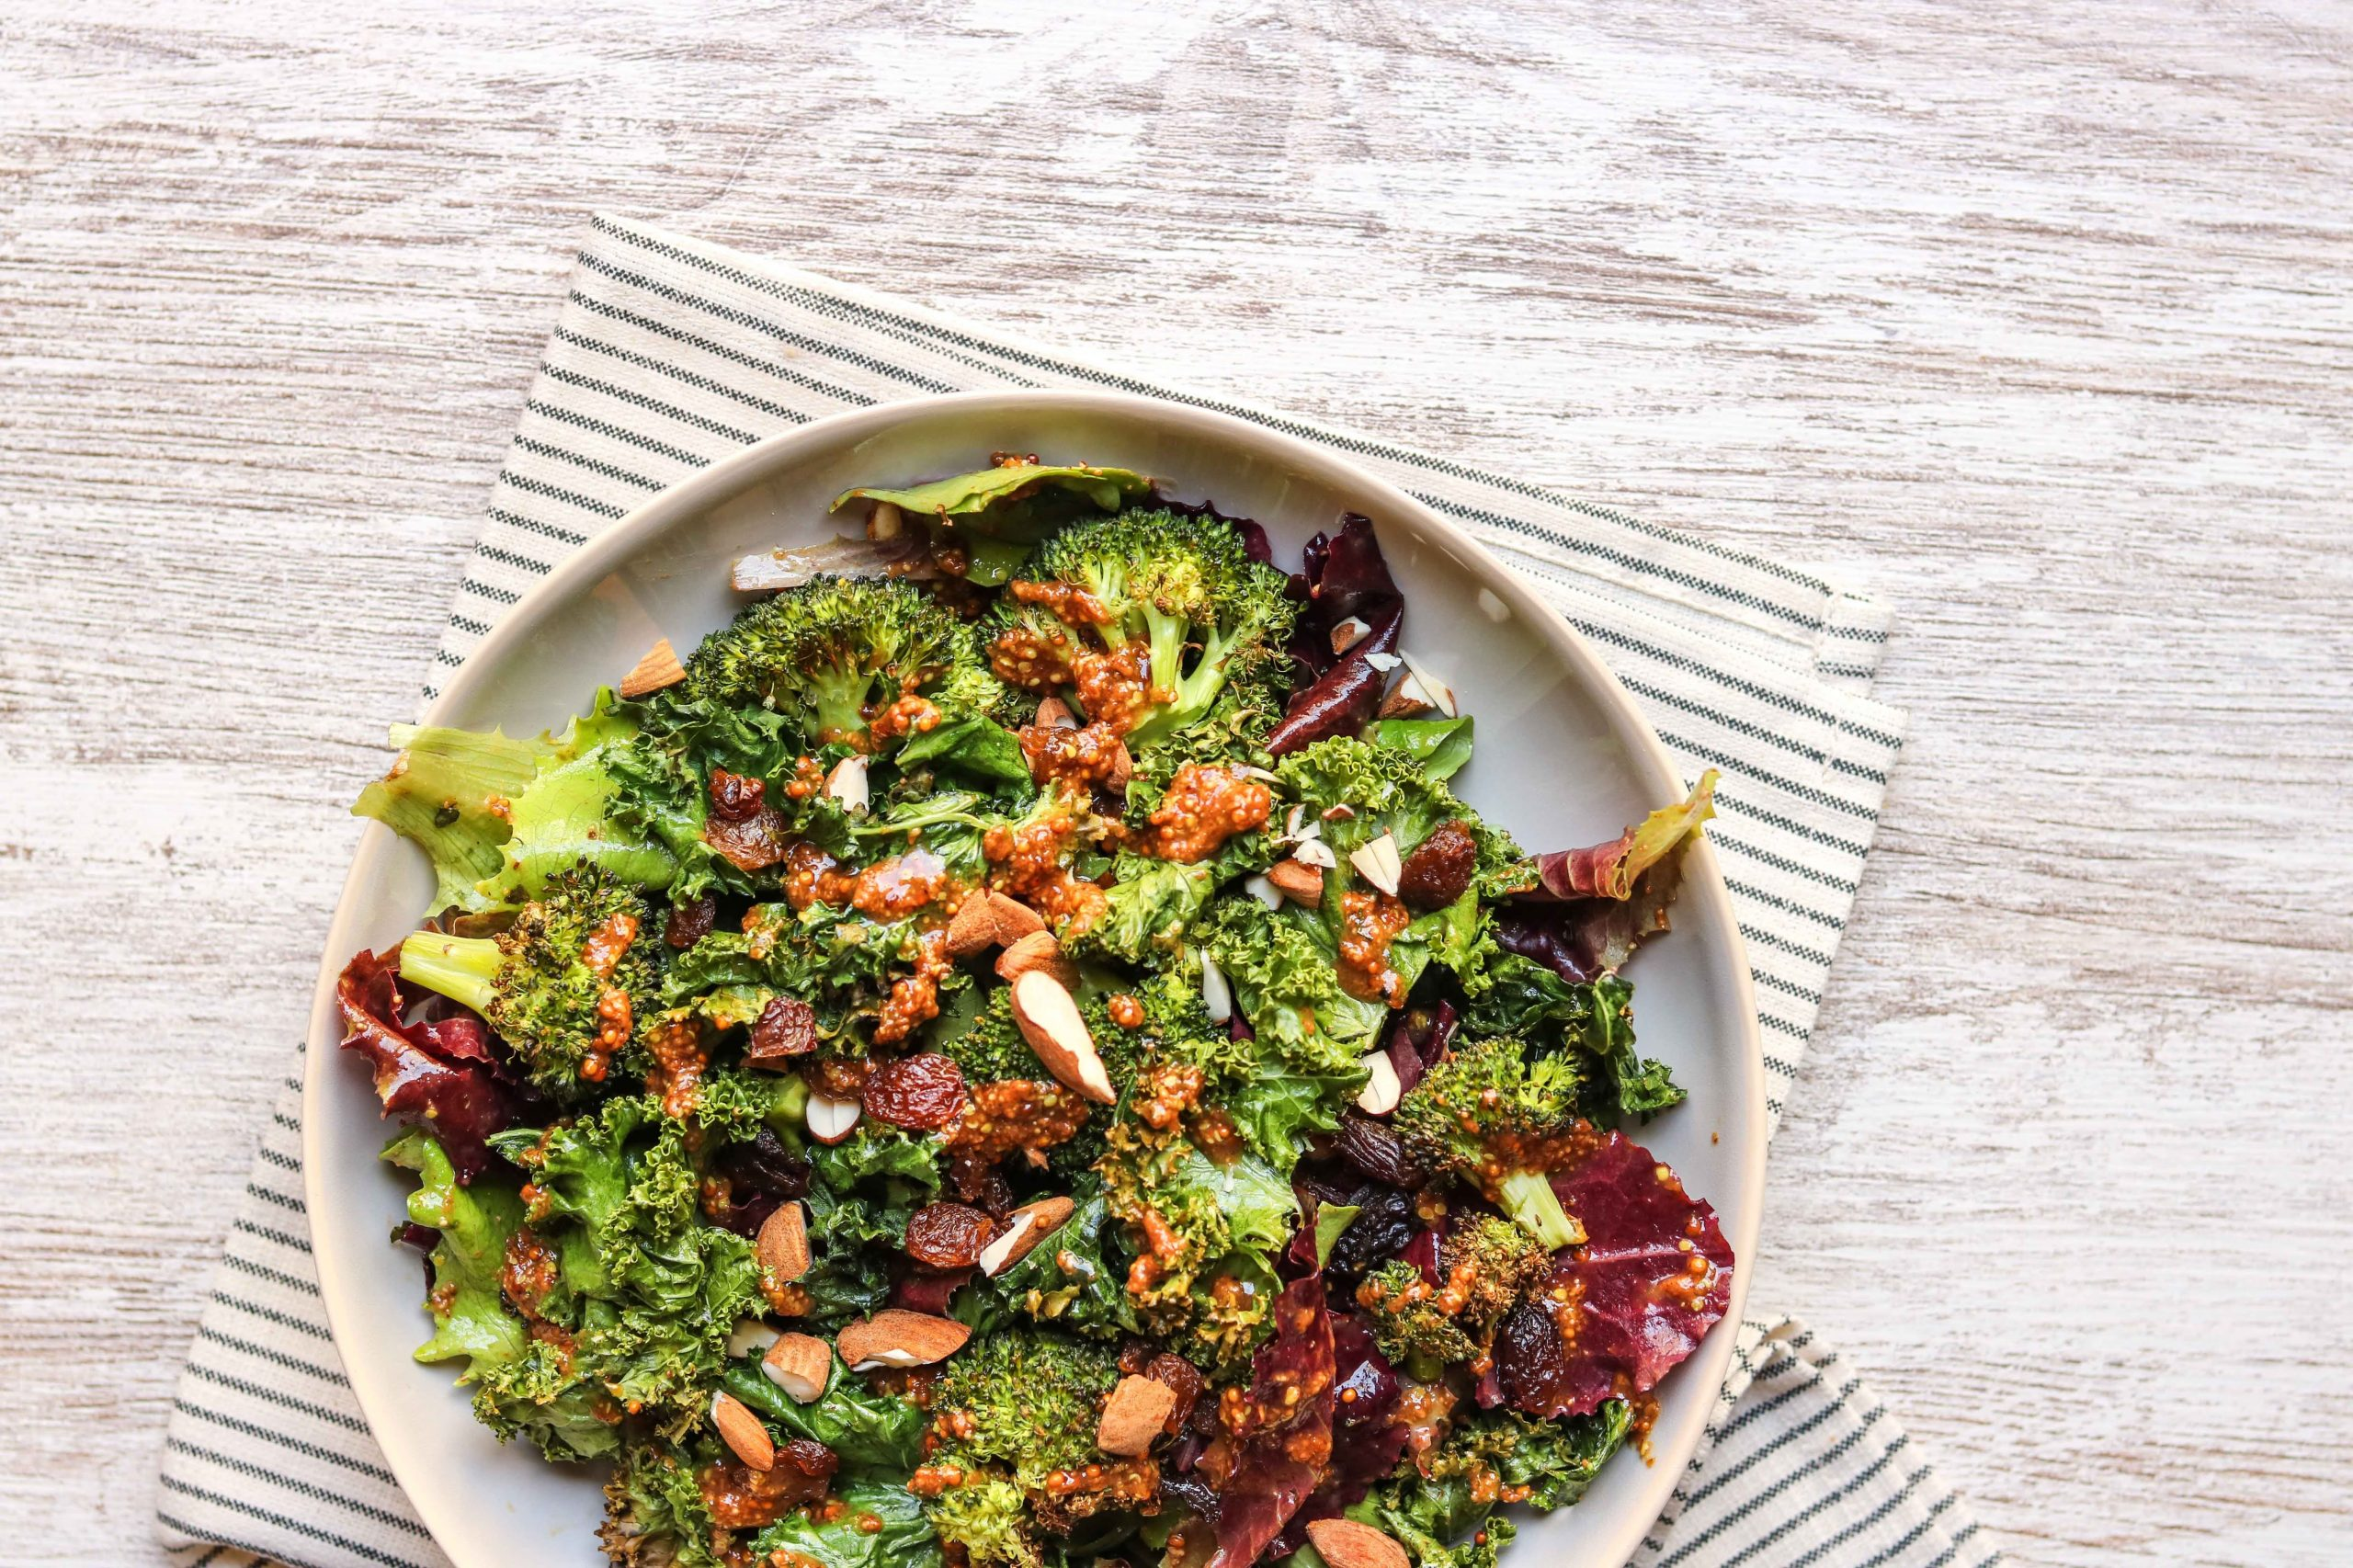 #11 Stress-busting food: Kale & Spinach. Photo byLisa FotiosfromPexels